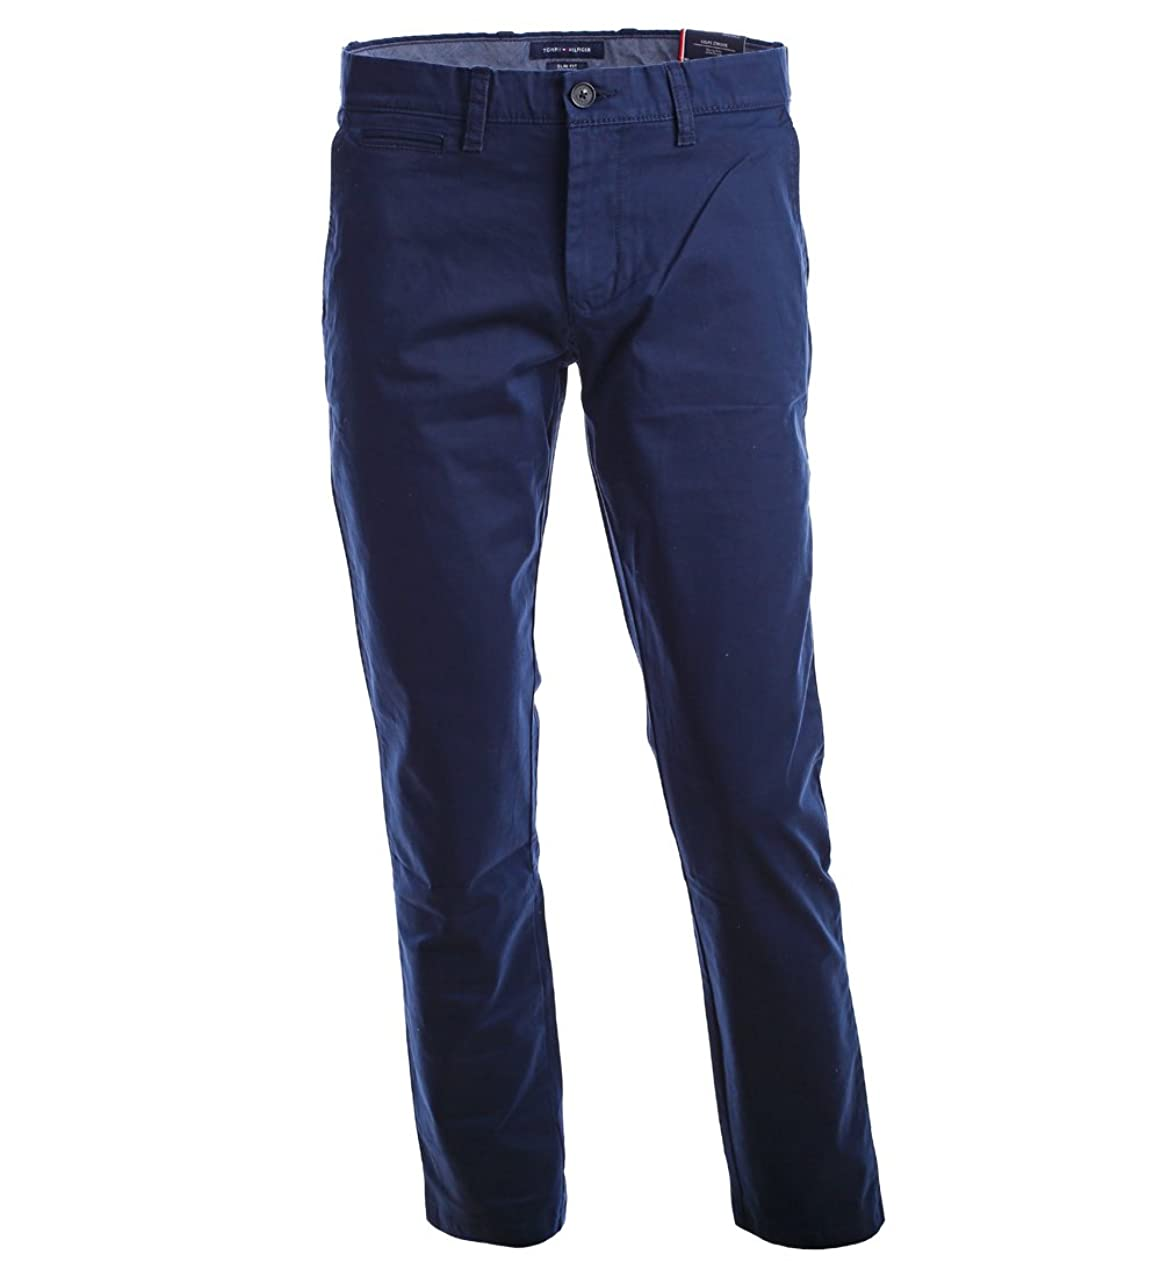 Tommy Hilfiger Men's Chino Pants Slim Fit